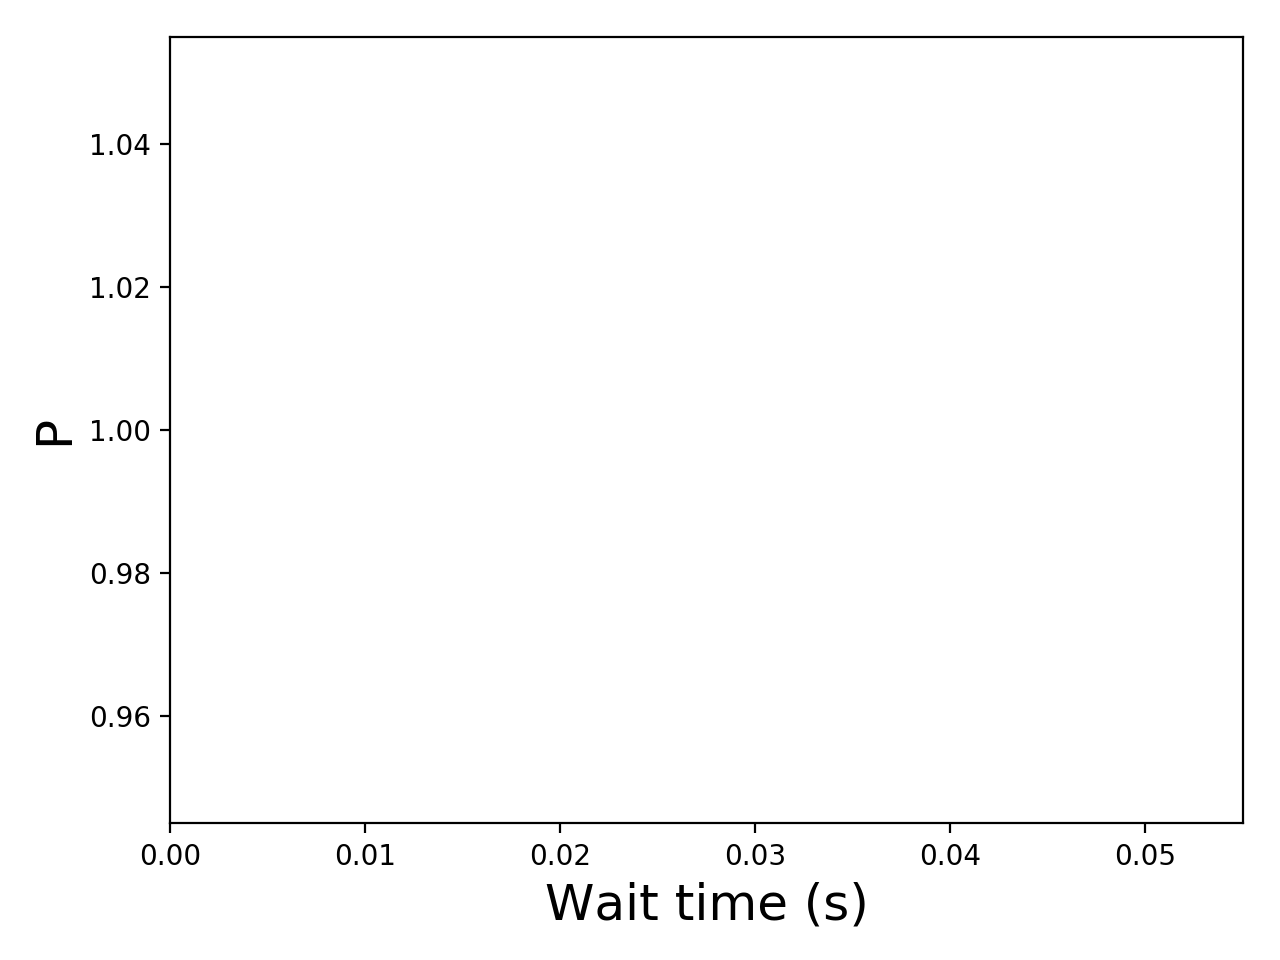 Task wait time CDF graph for the askalon-new_ee44 trace.